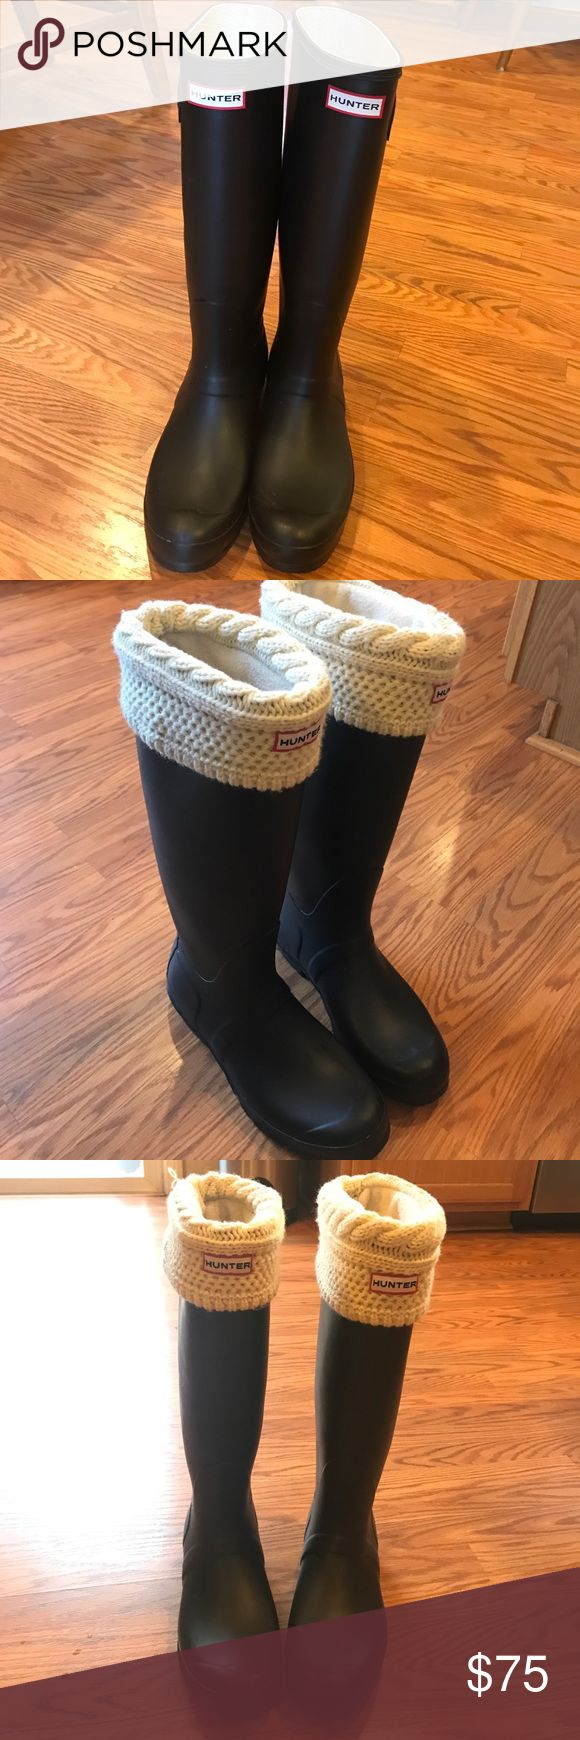 Hunter Boots! Matte Black Excellent condition. Hunter tall boots, white fleece liners included! Barely worn on the bottom! Hunter Boots Shoes Winter & Rain Boots